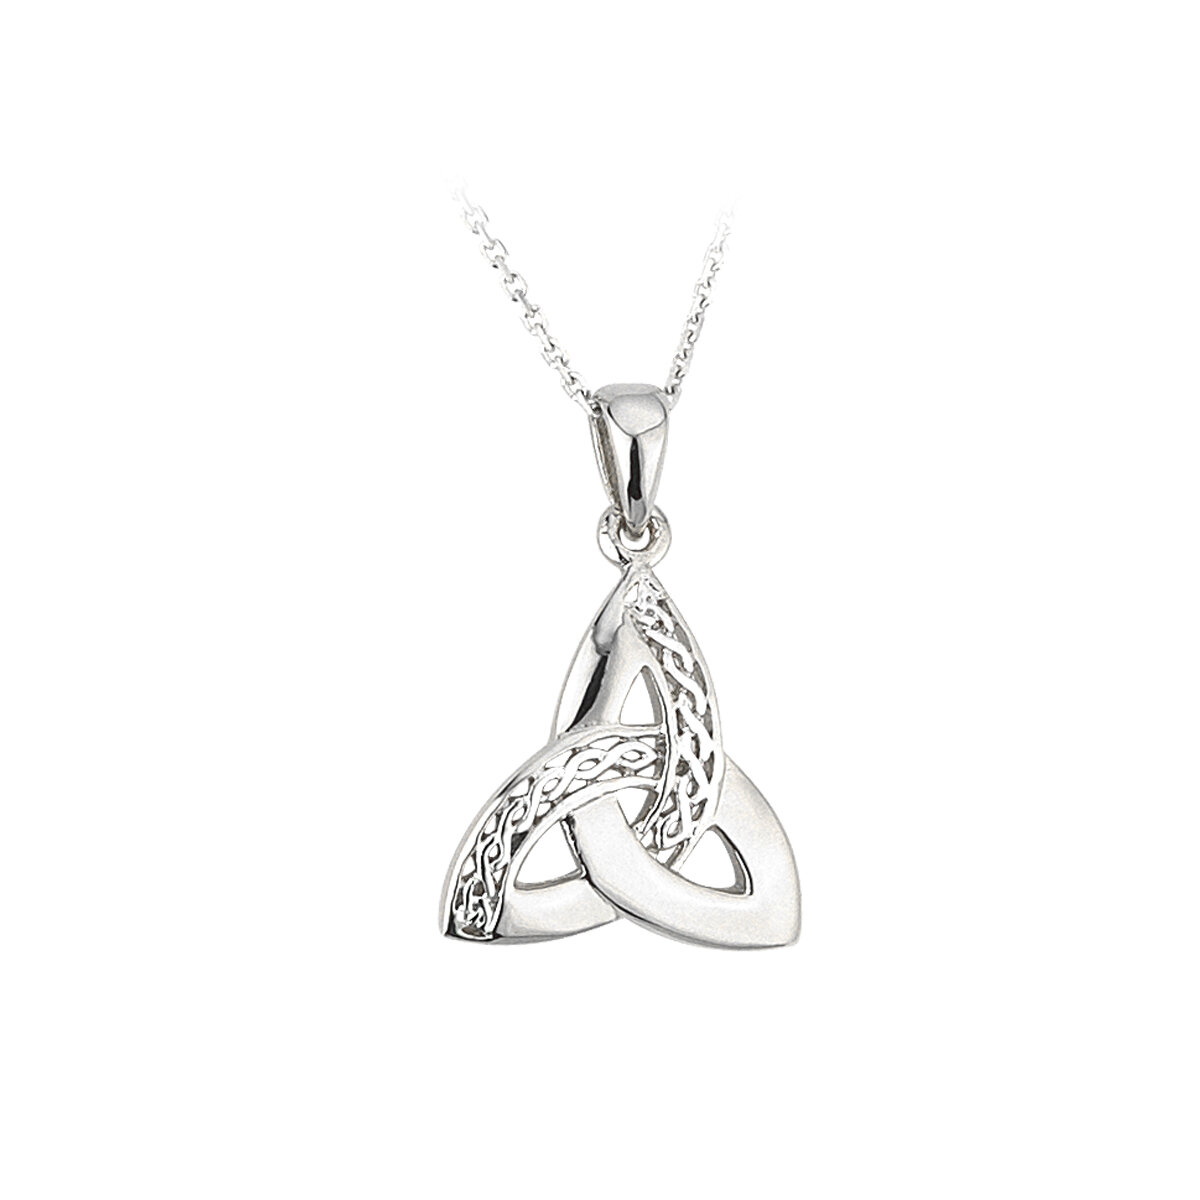 sterling silver celtic trinity knot pendant s44867 from Solvar